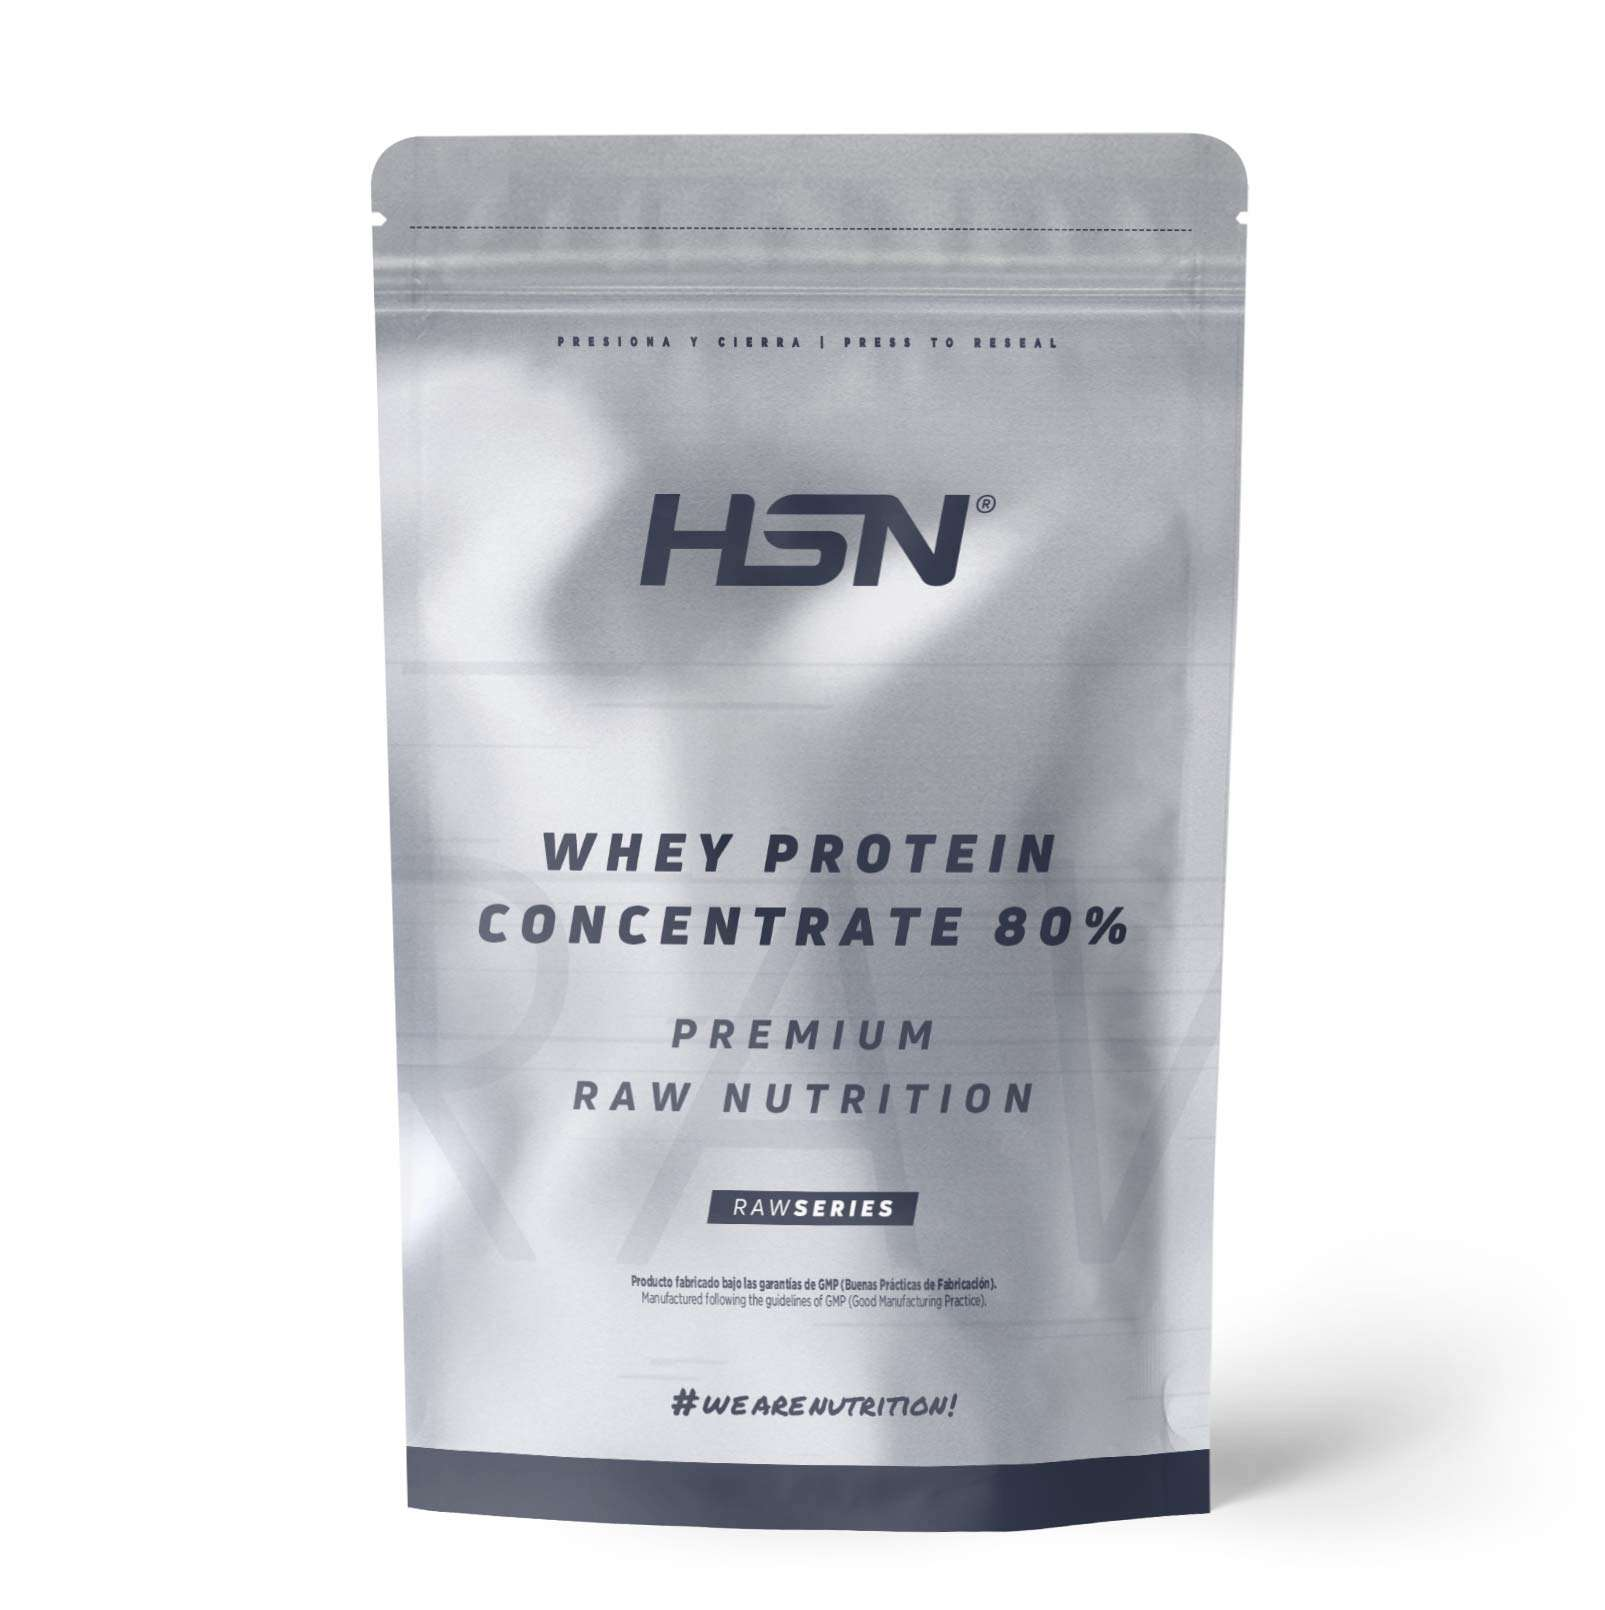 WHEY PROTEIN CONCENTRATE 80 % 2.0